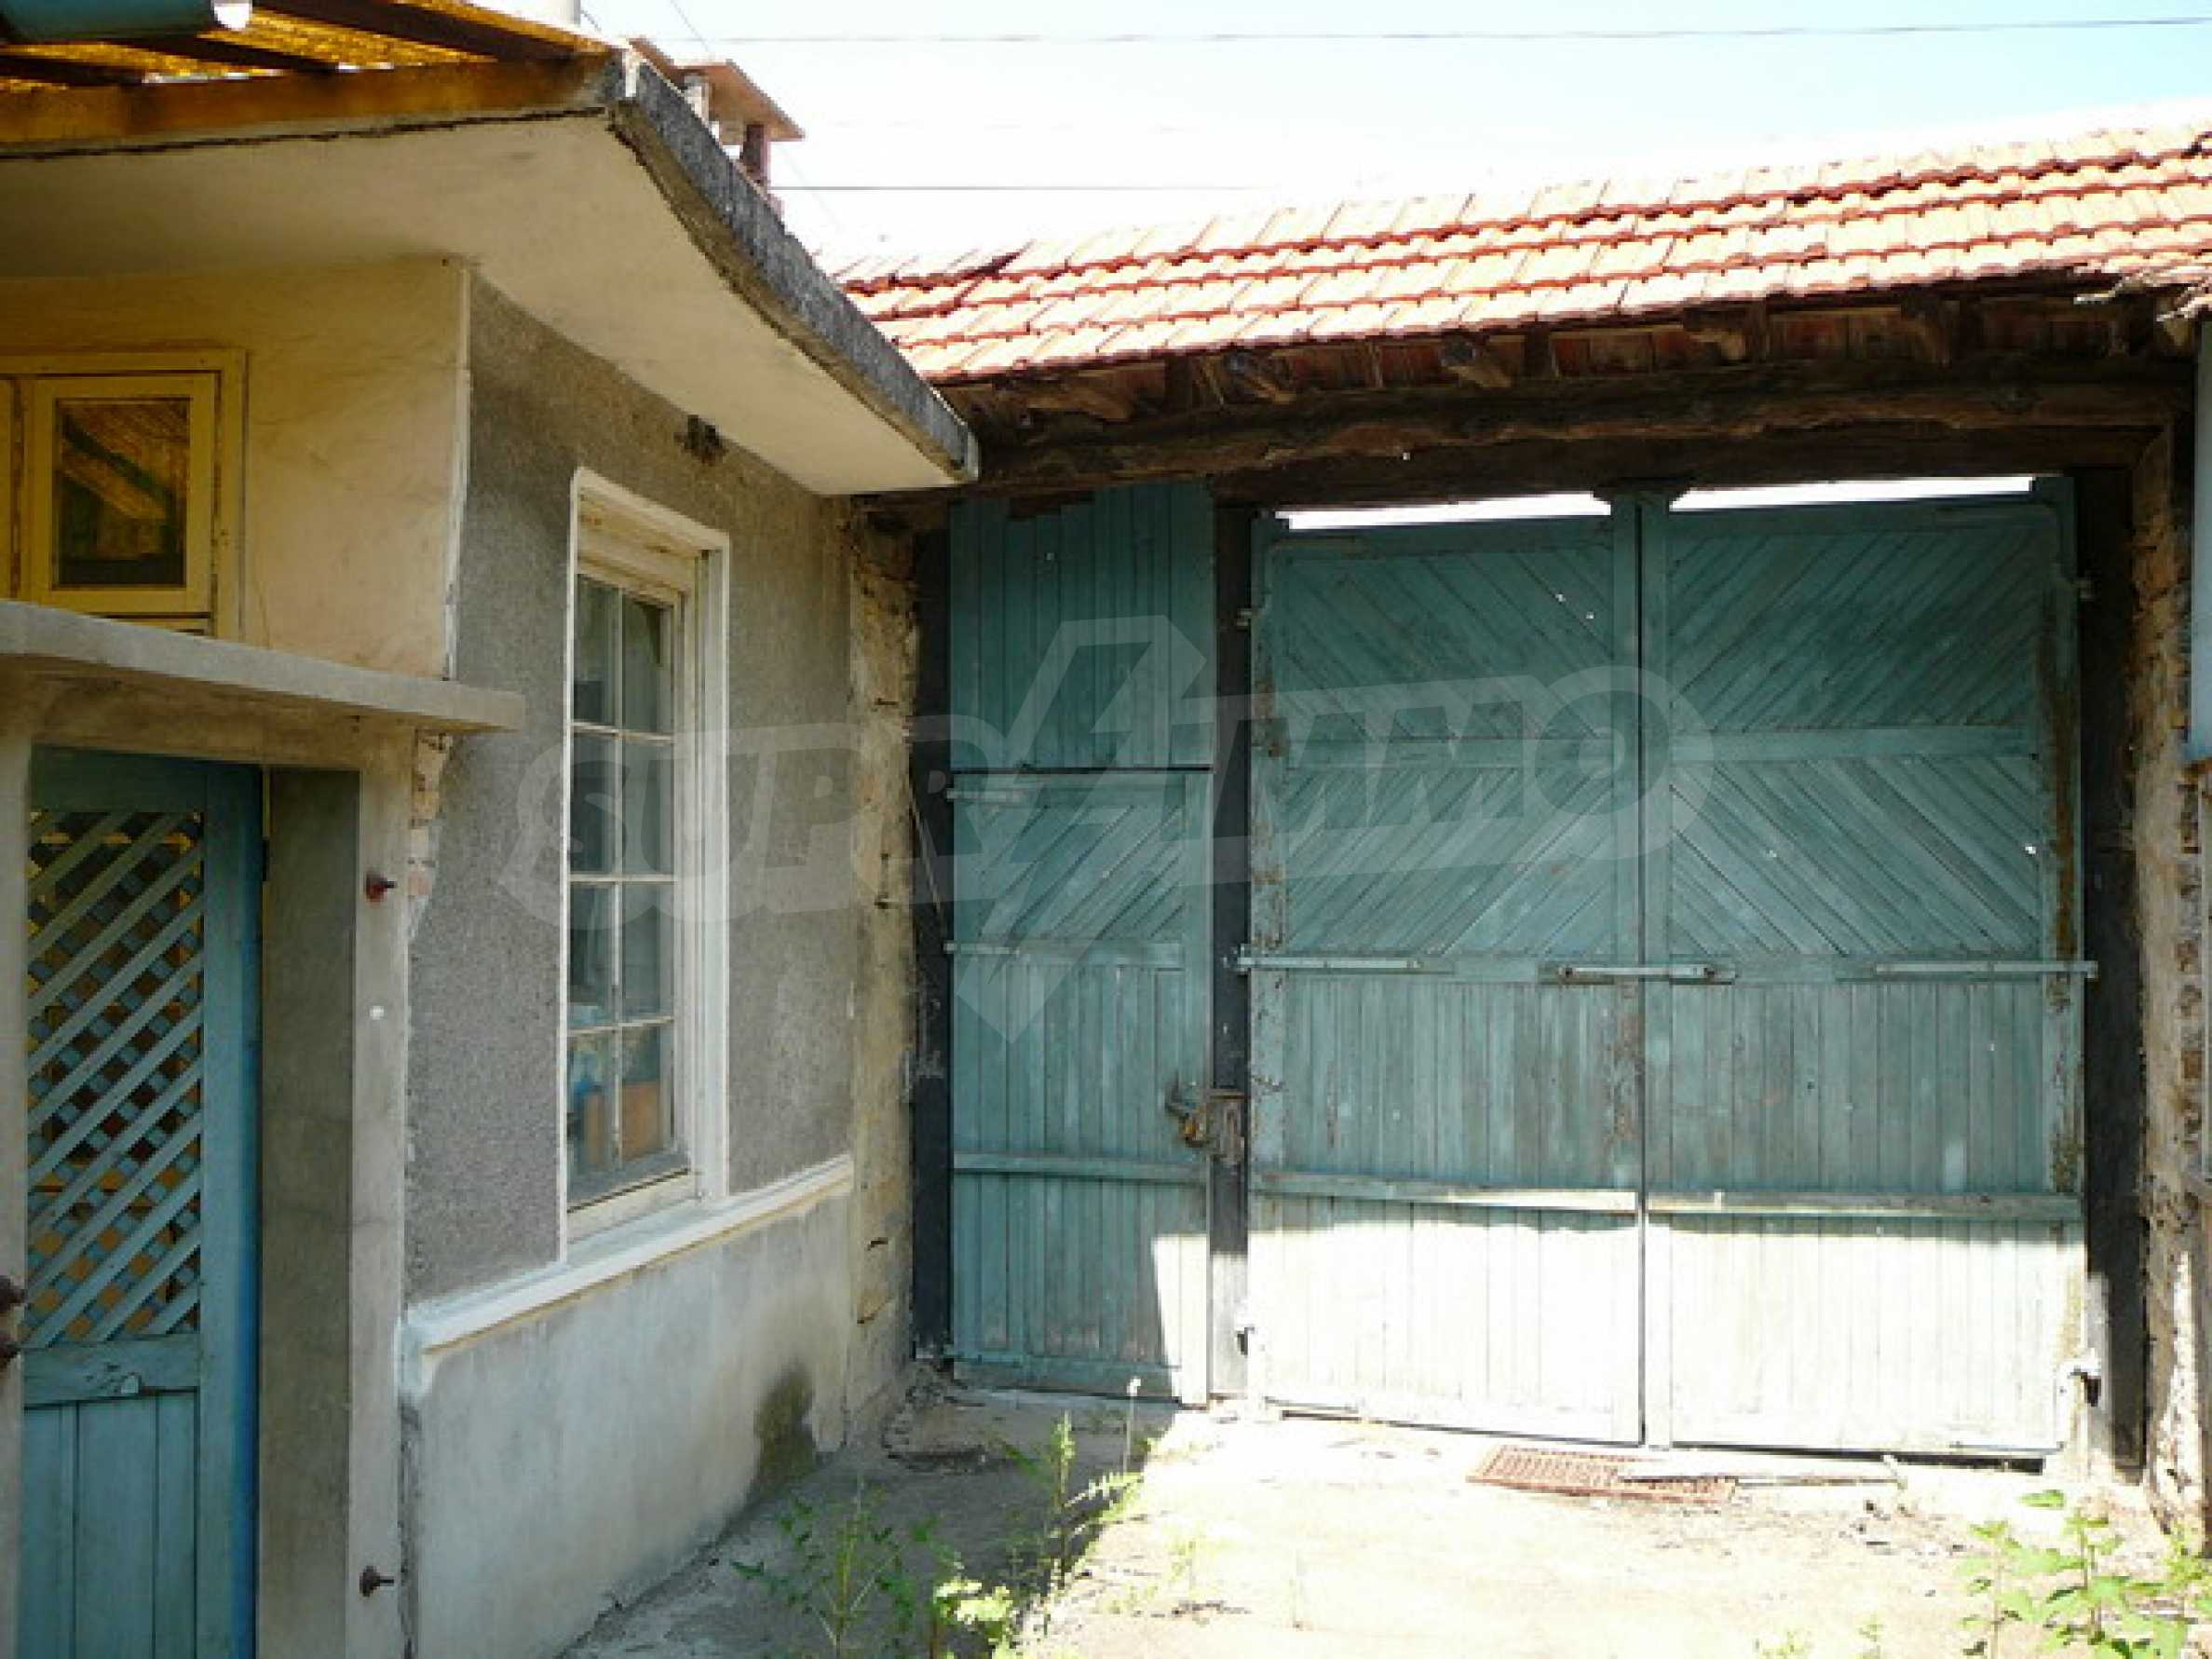 House for sale in a village close to Veliko Tarnovo 36